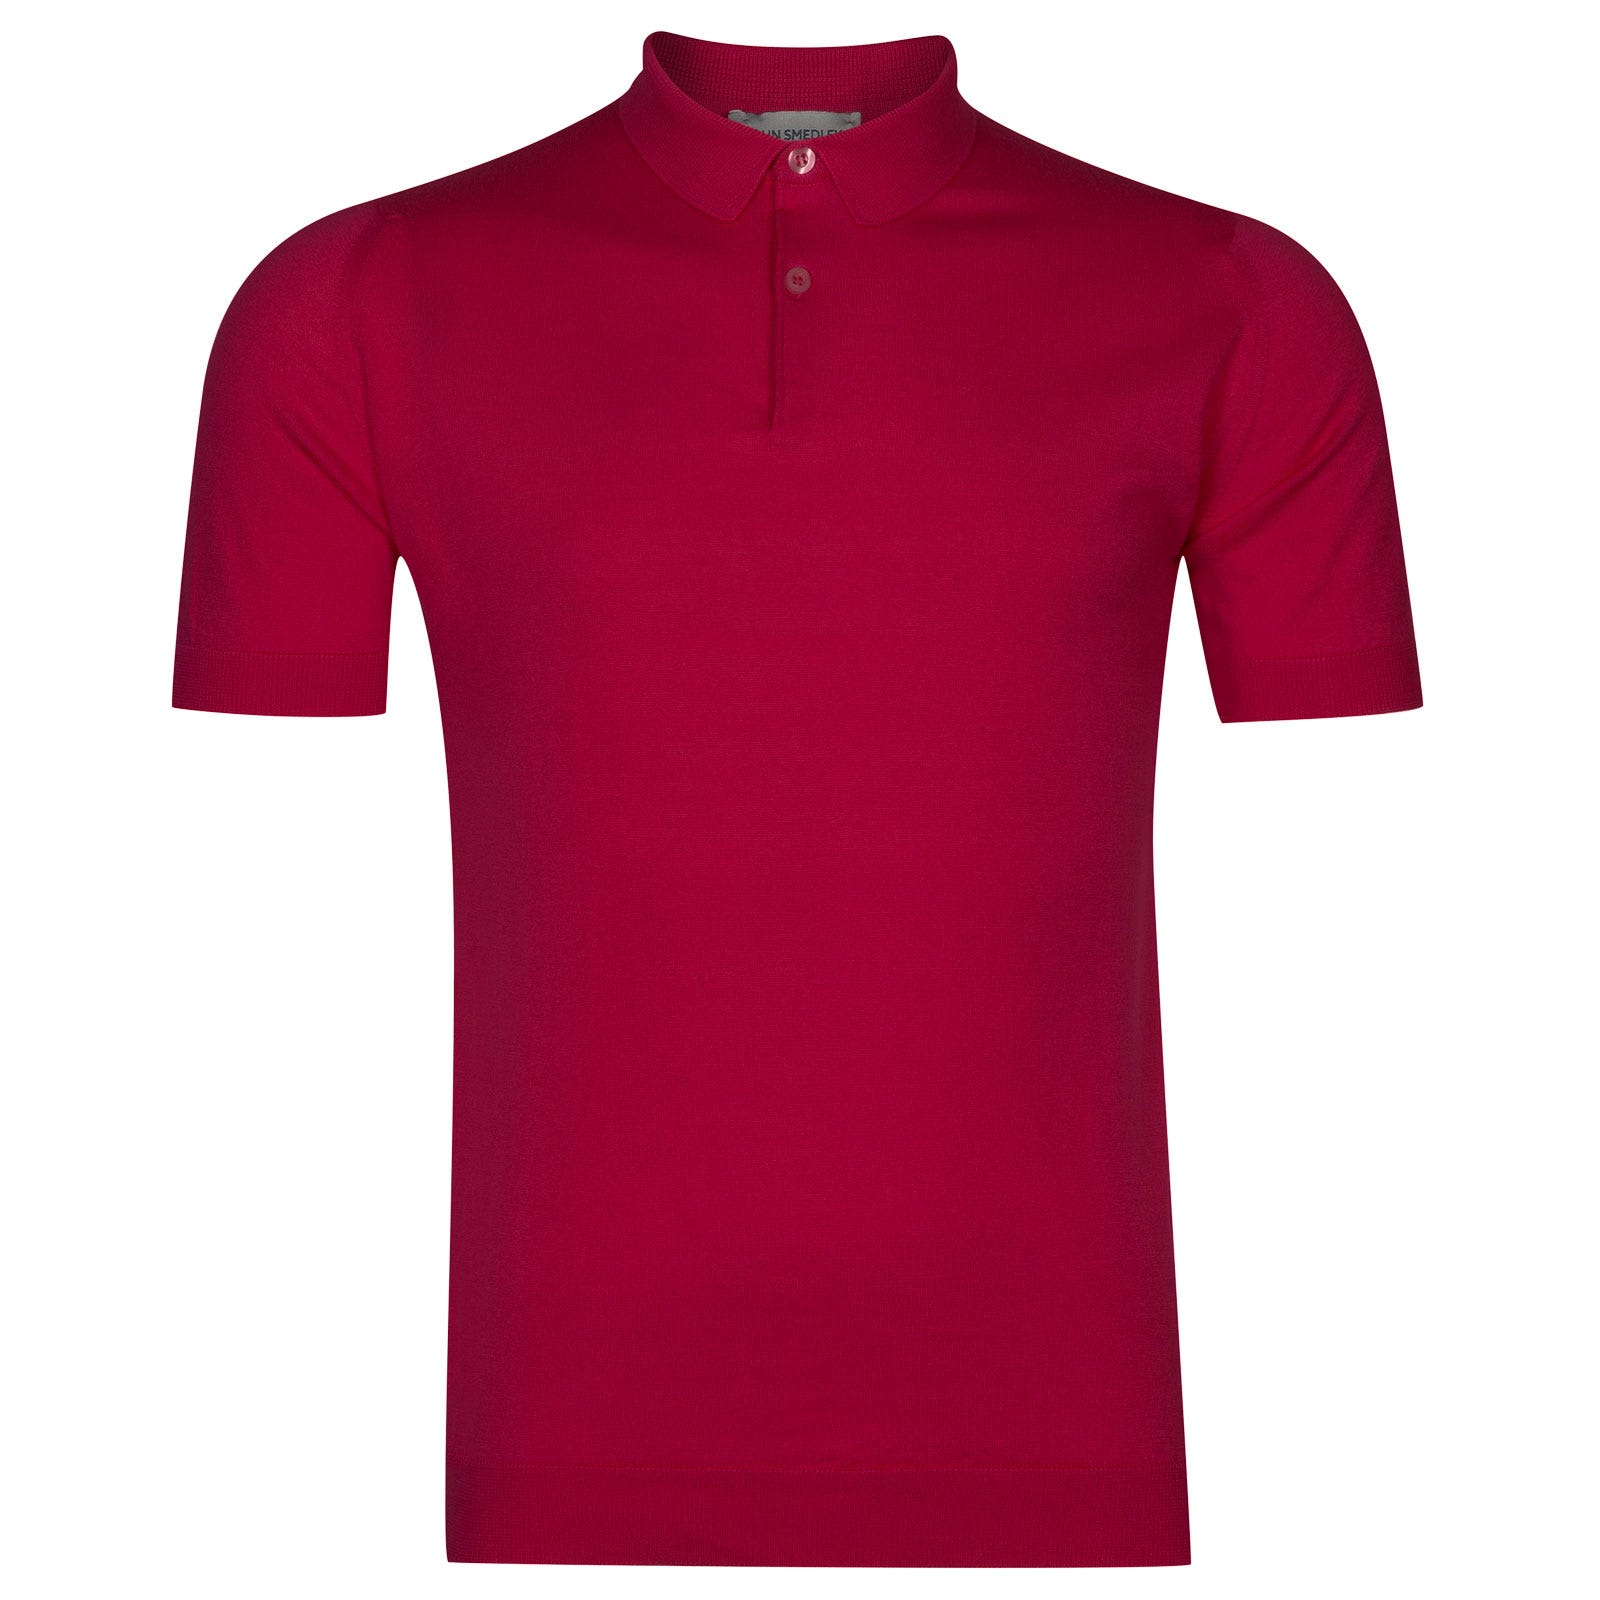 John Smedley rhodes Sea Island Cotton Shirt in Scarlet Sky-S